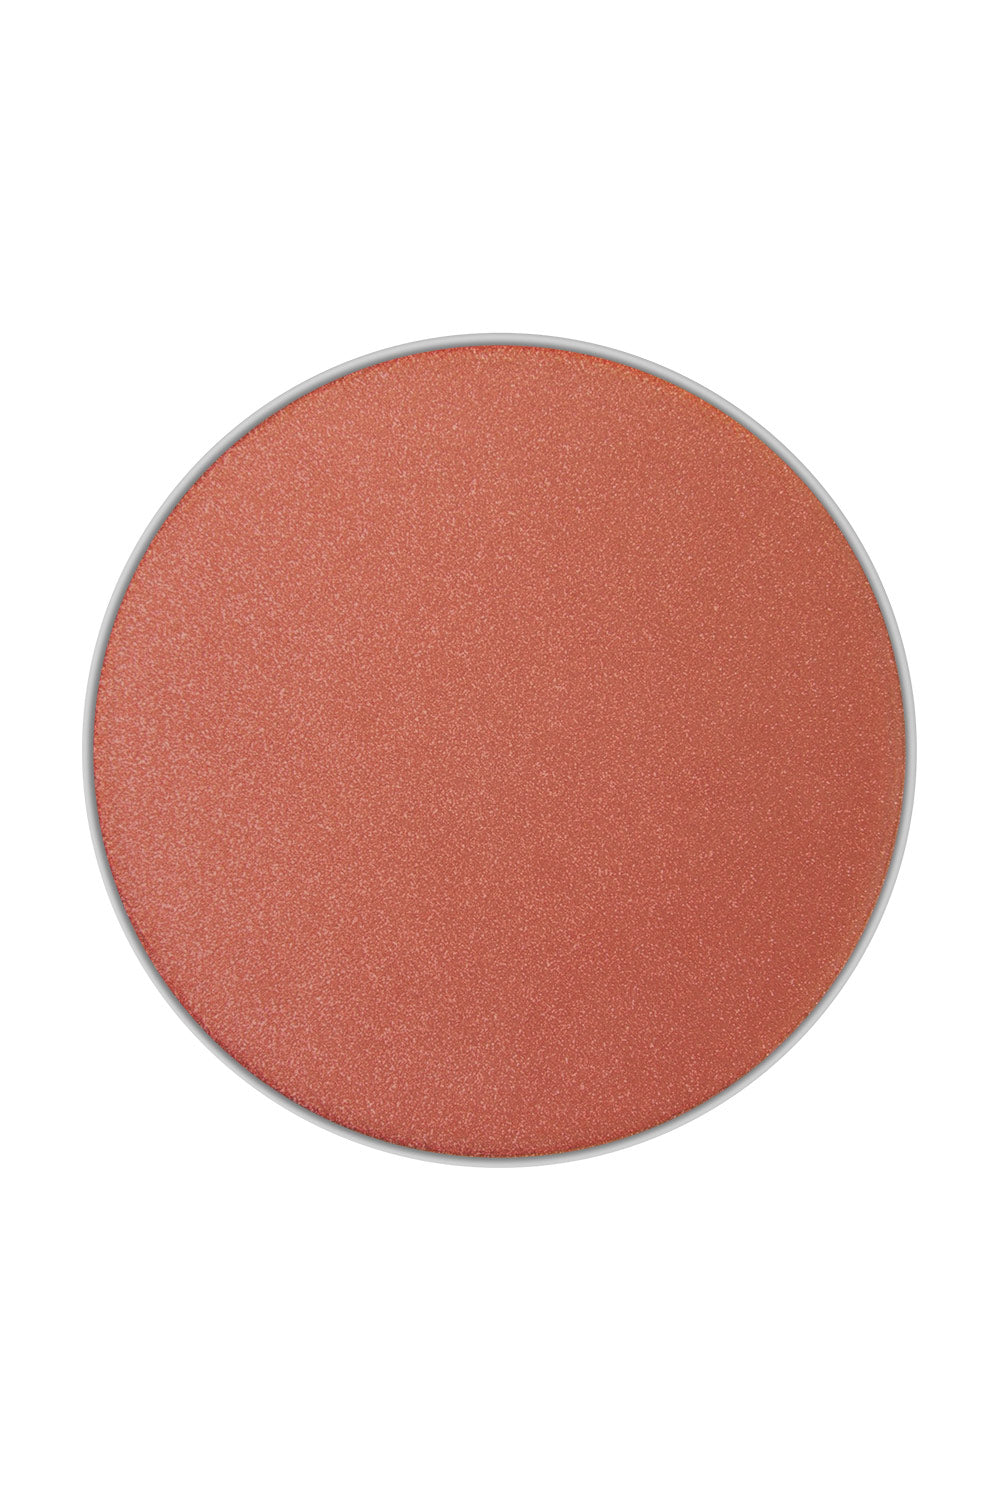 Type 2 Blush Pan - Plum Glow Shimmer